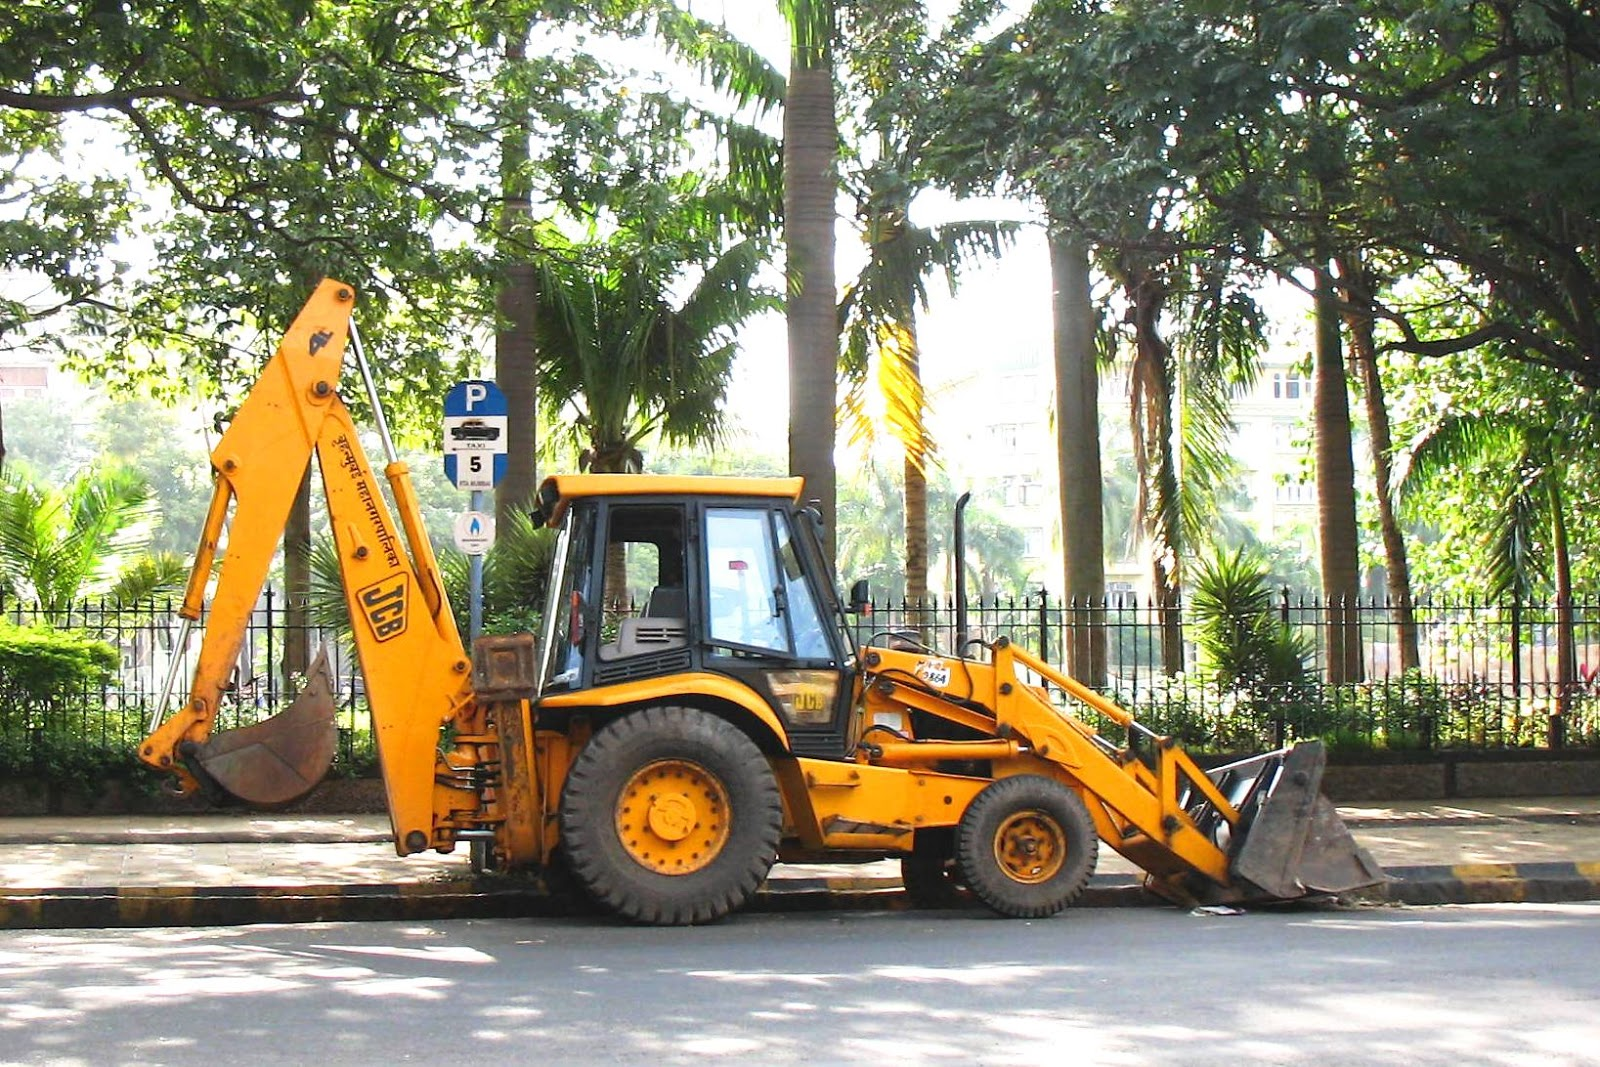 JCB excavator in the streets of Mumbai